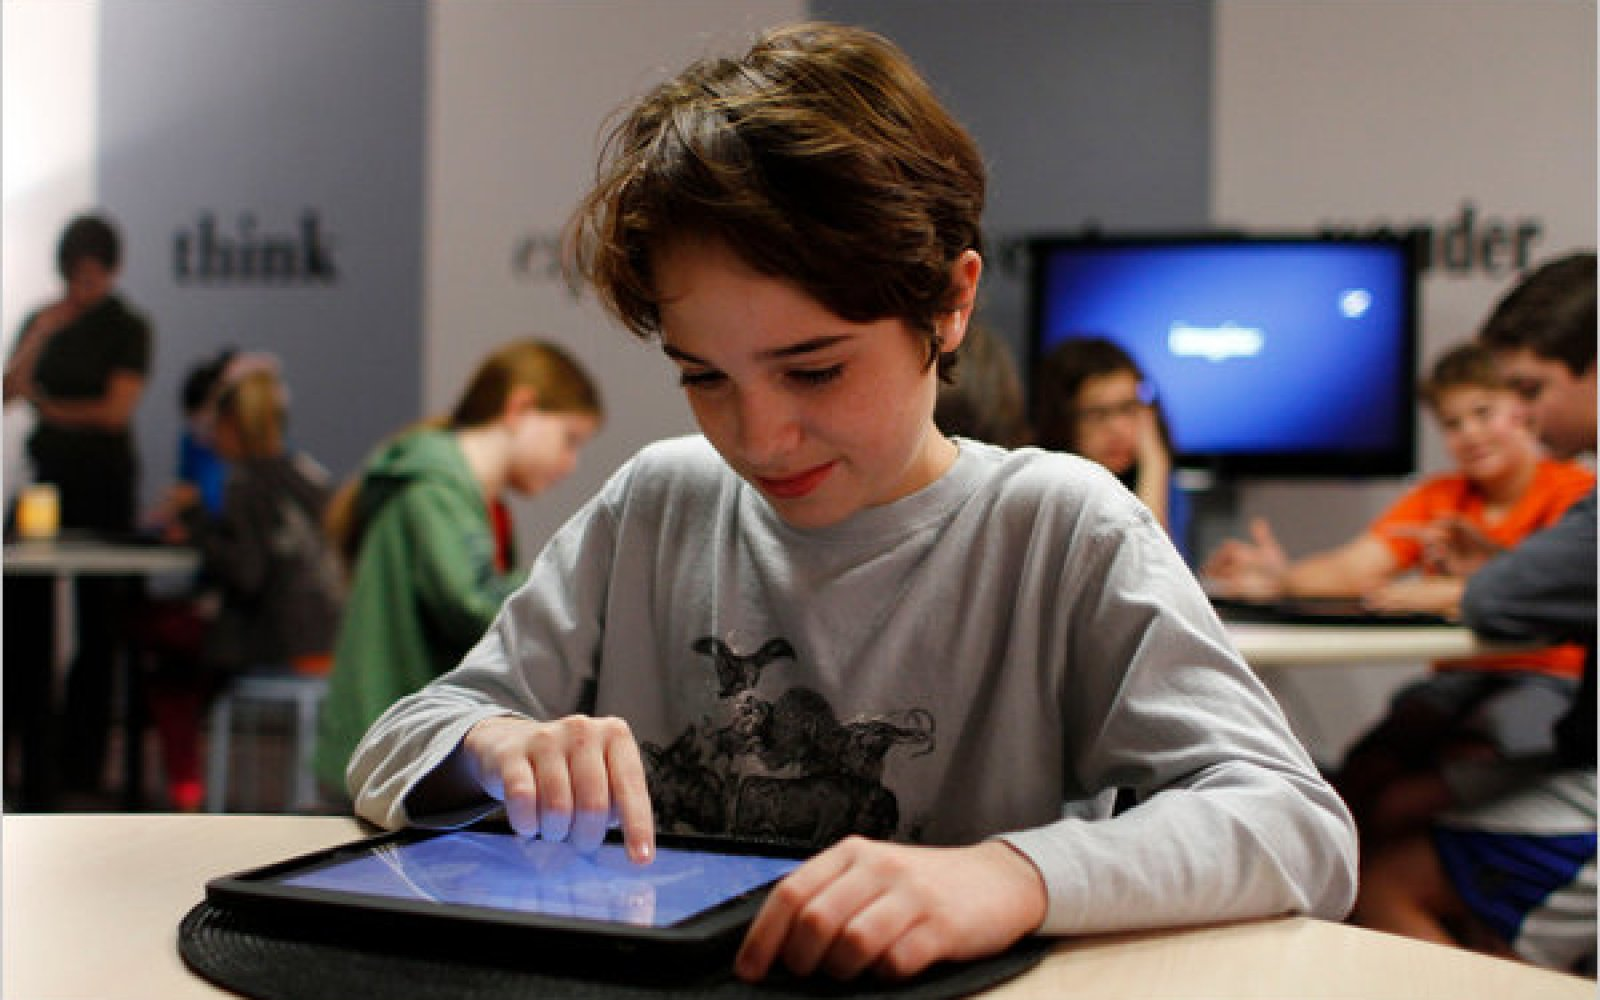 LA Unified School District will give each of its 640,000 students iPads by the end of next year